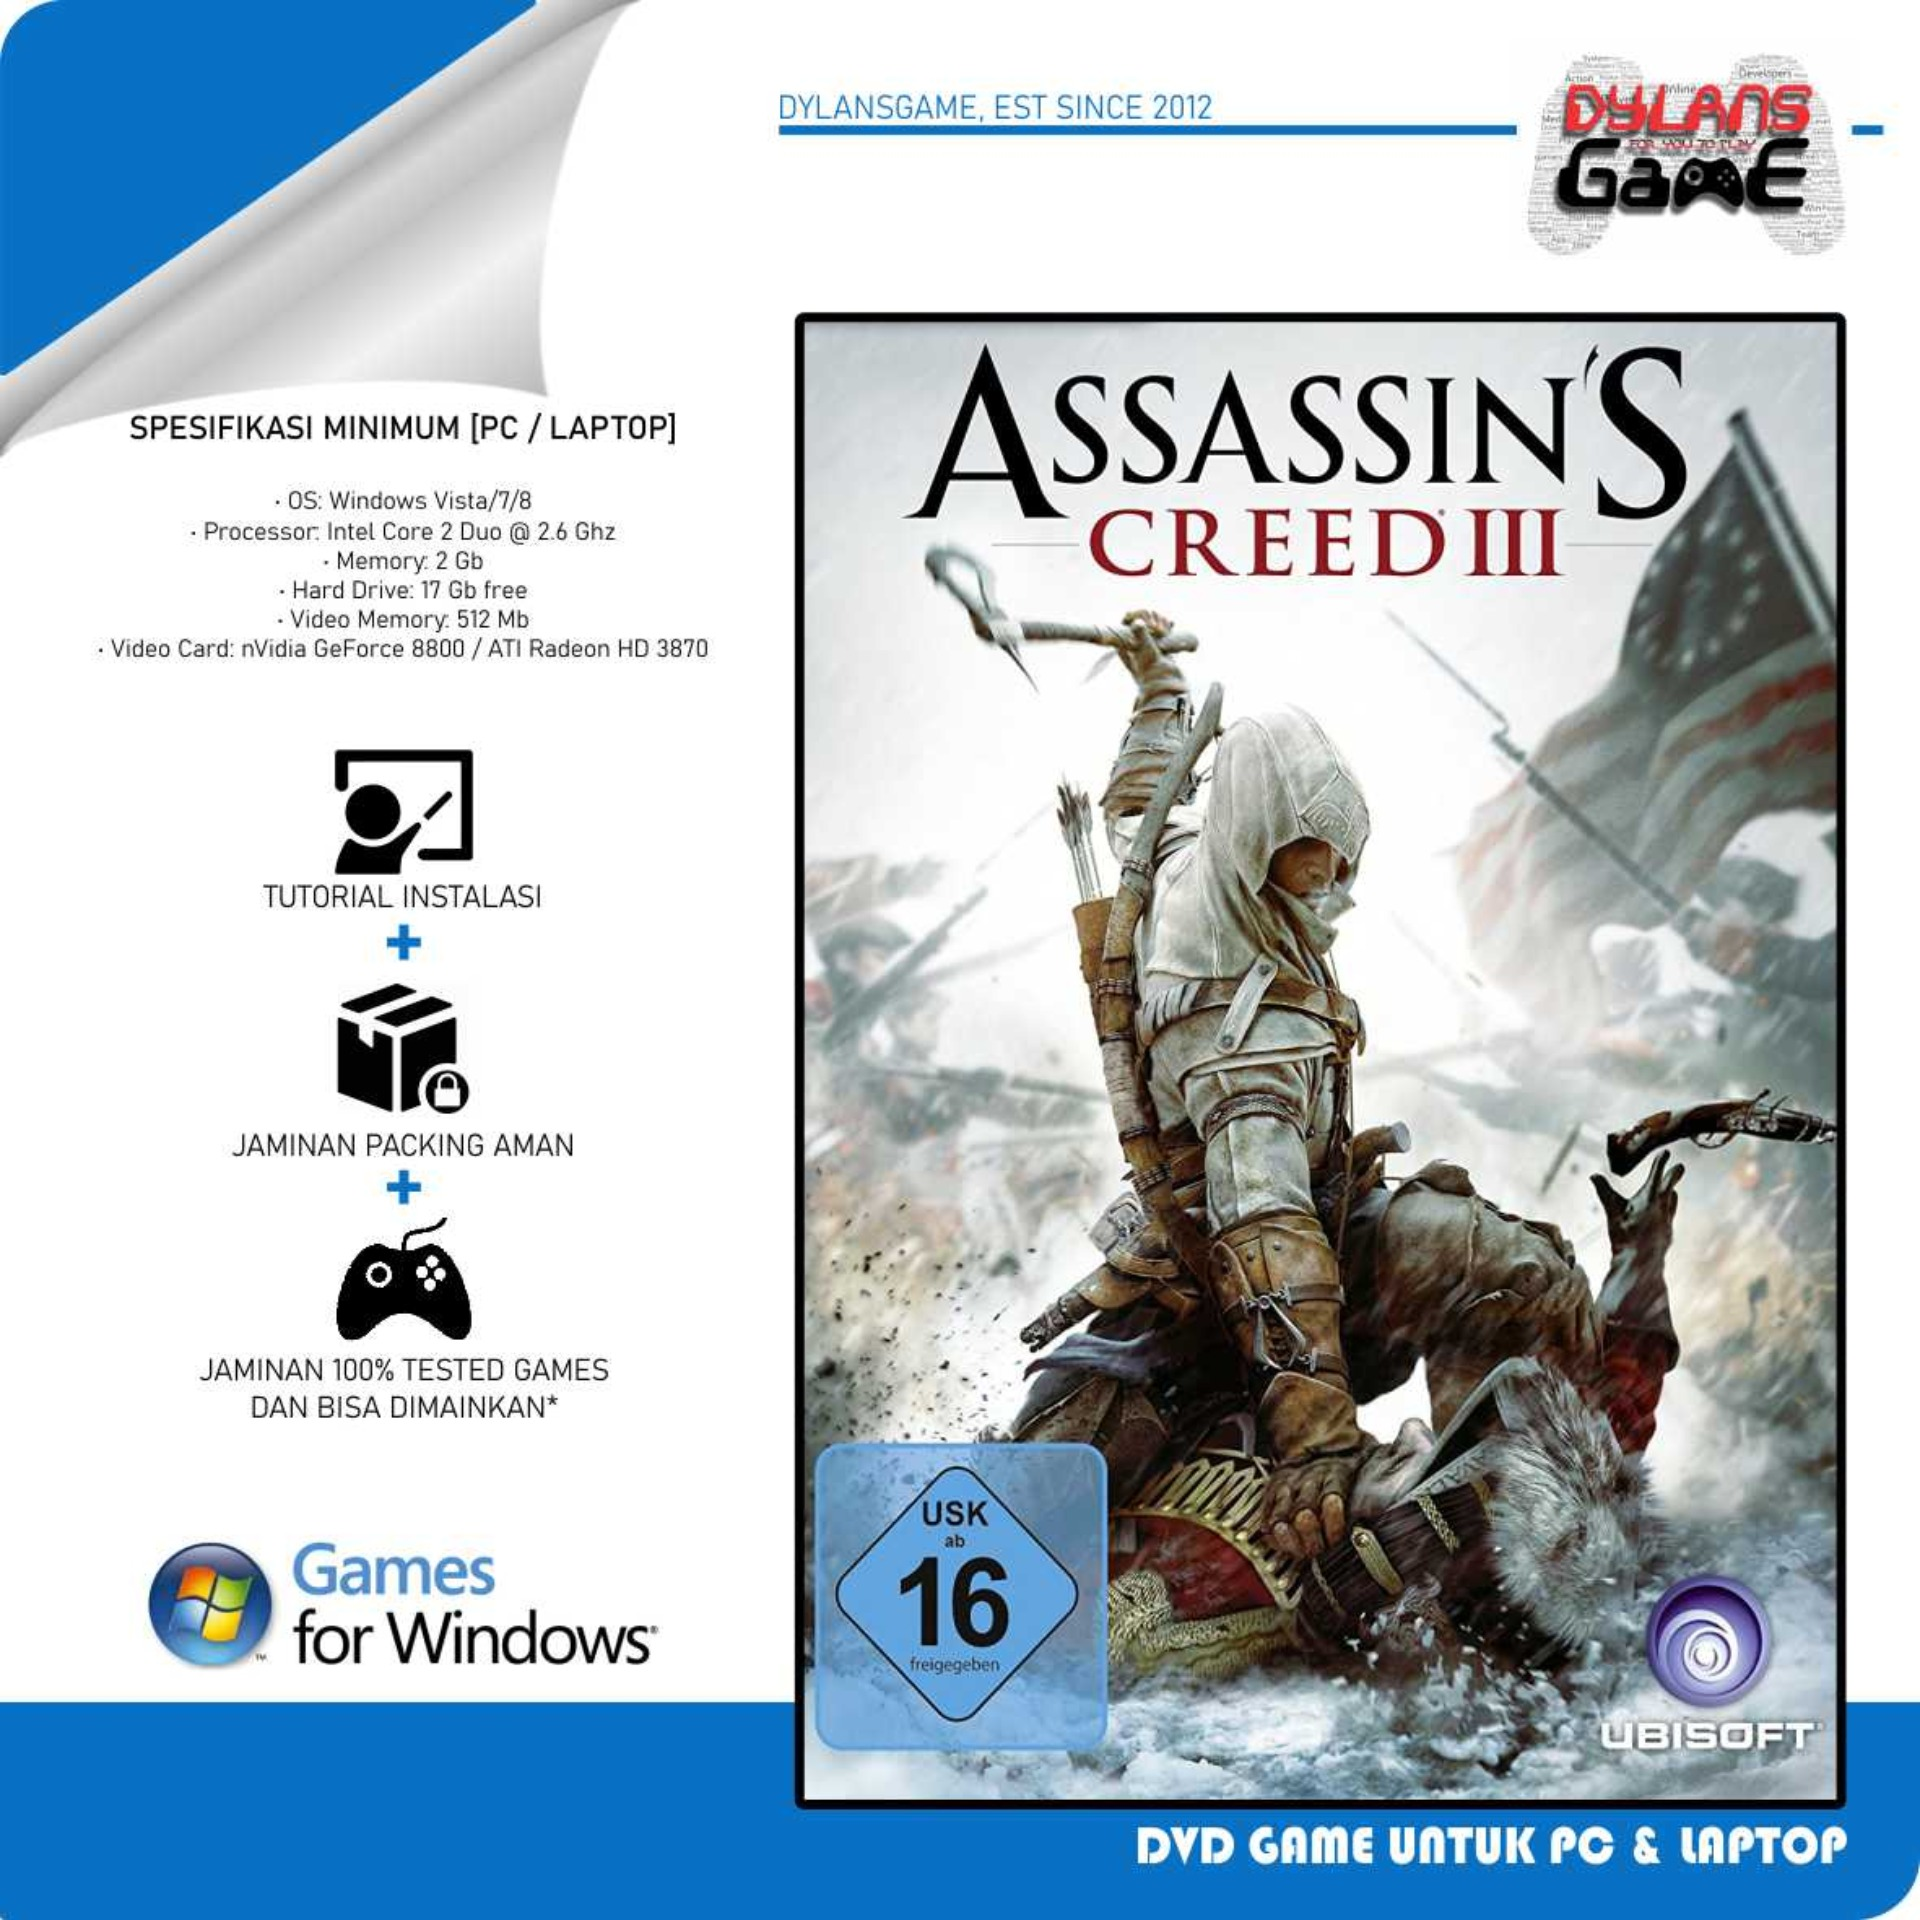 https://www.lazada.co.id/products/assassins-creed-3-ac3-pc-games-dvd-game-laptop-cd-game-pc-i341092181-s353254283.html